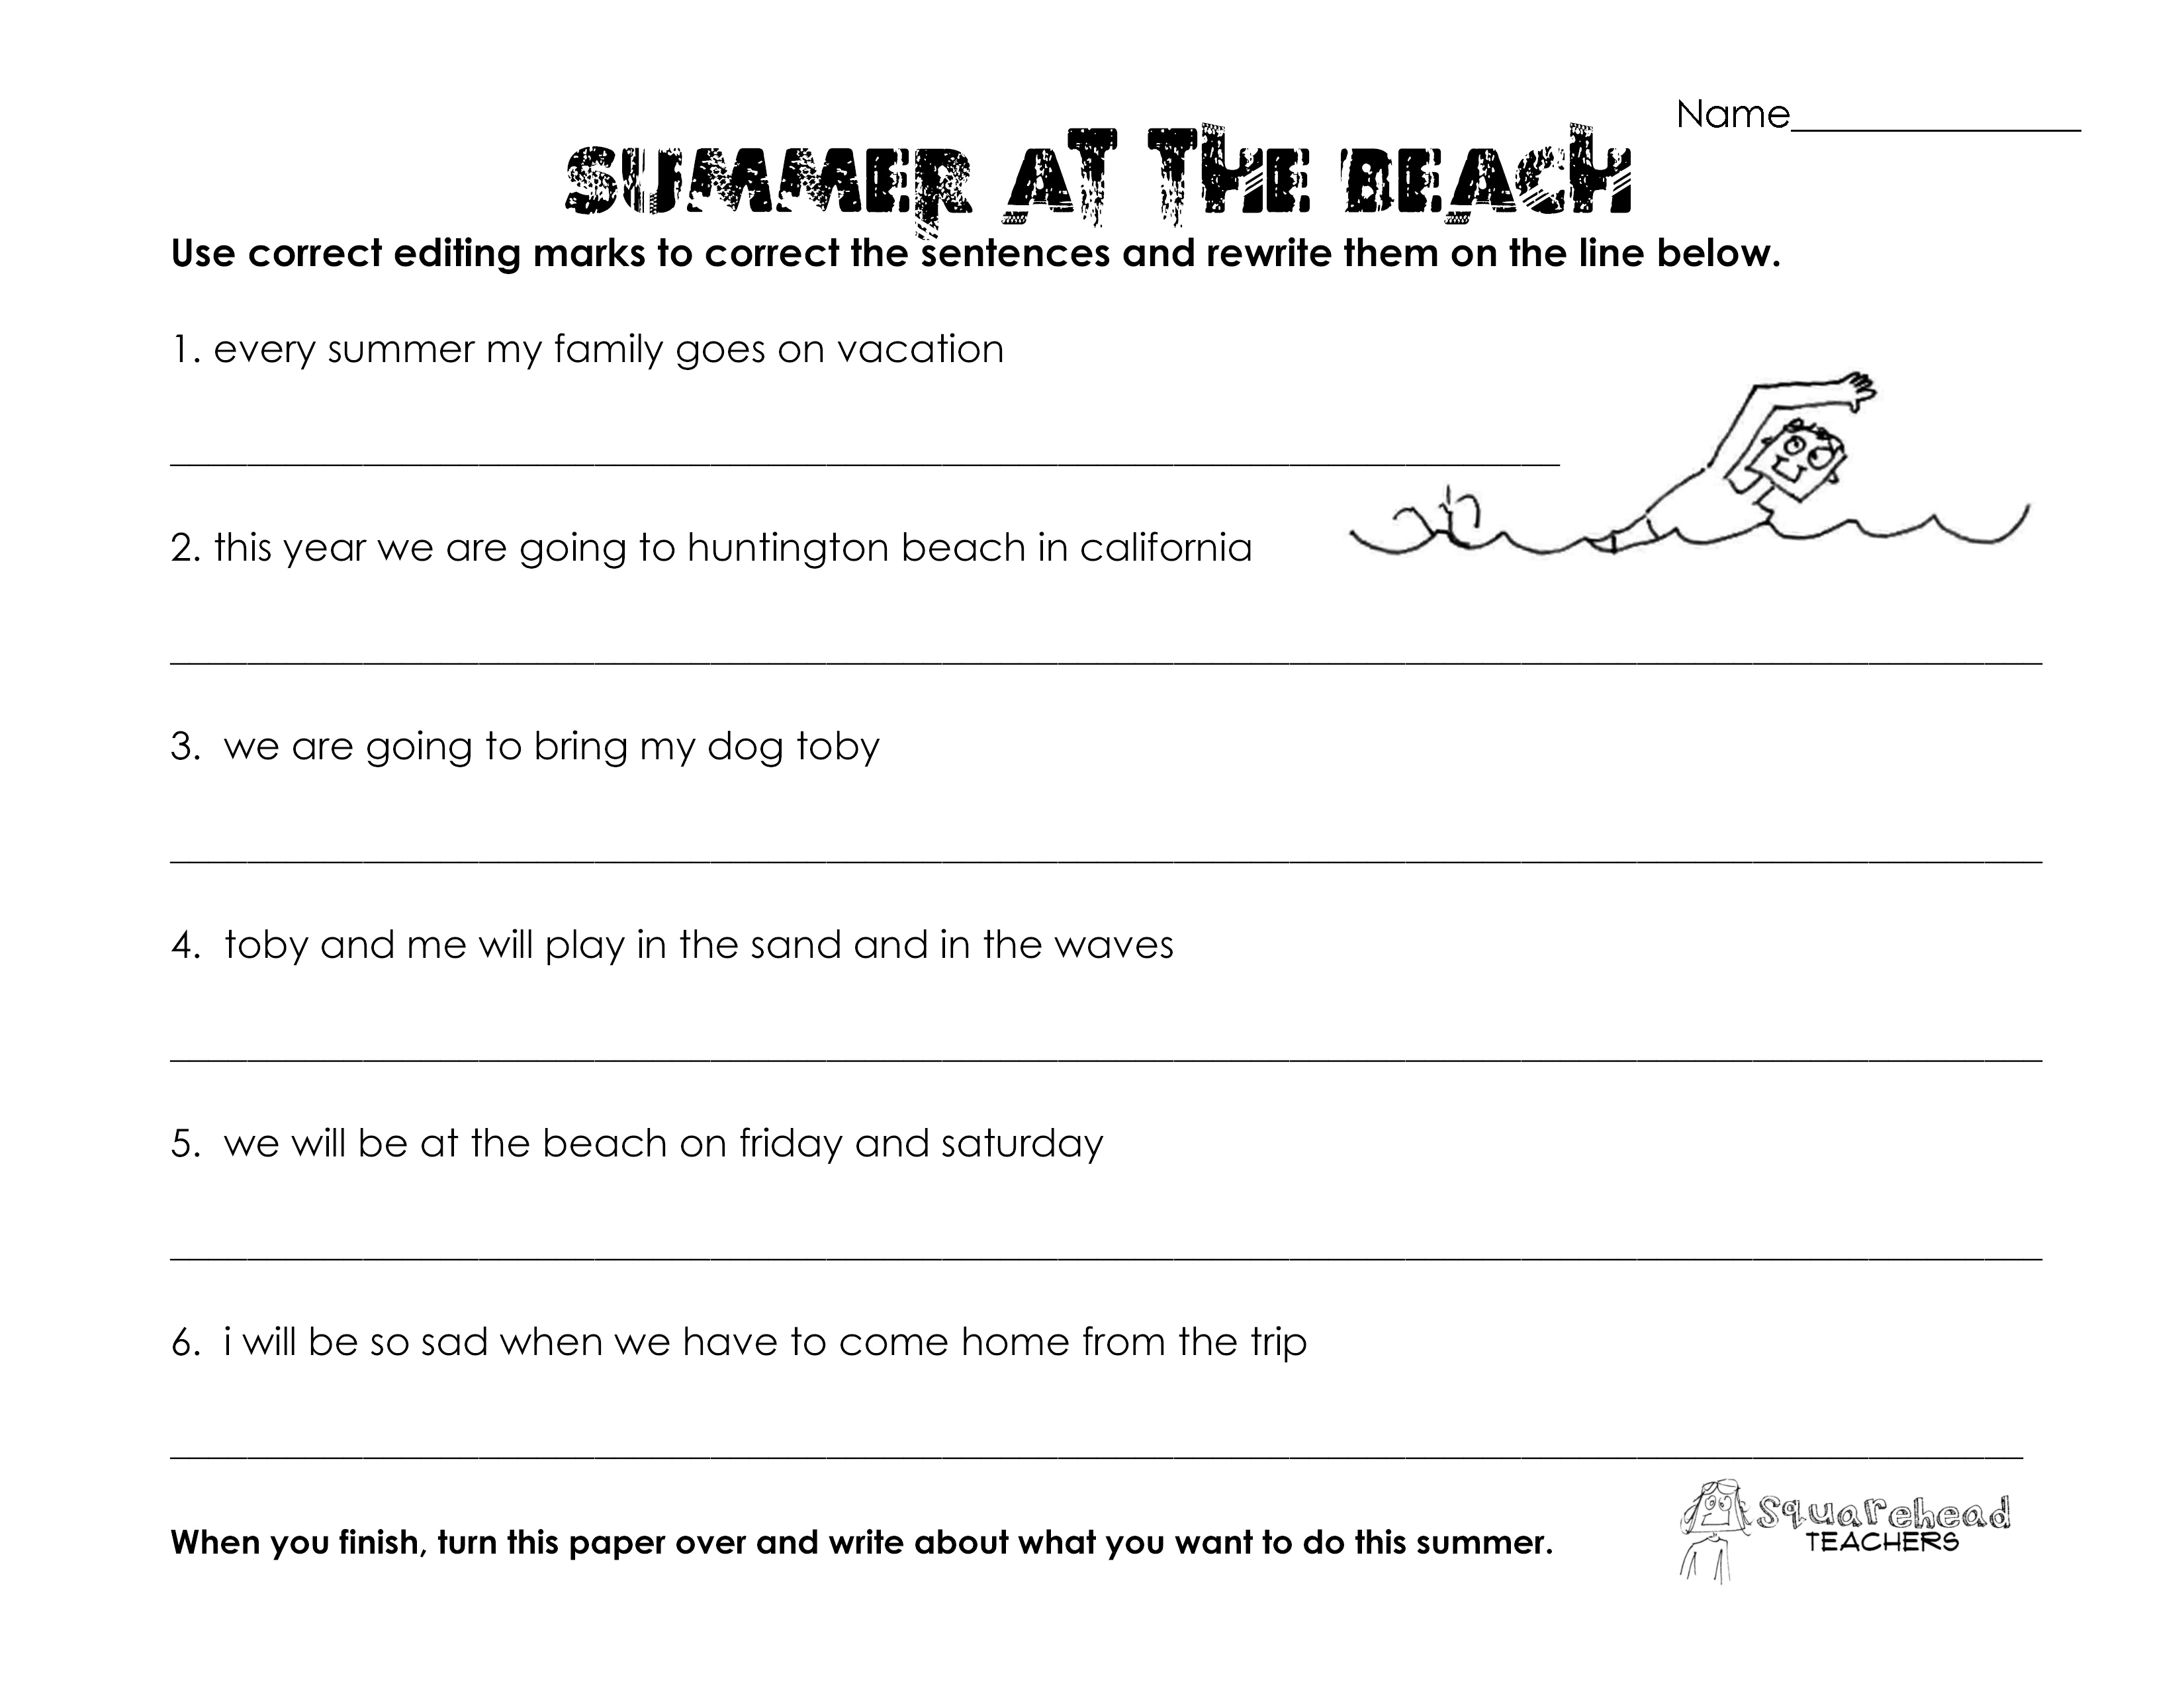 Grammar Worksheets 7Th Grade Free Worksheets Library – P90x Back and Biceps Worksheet